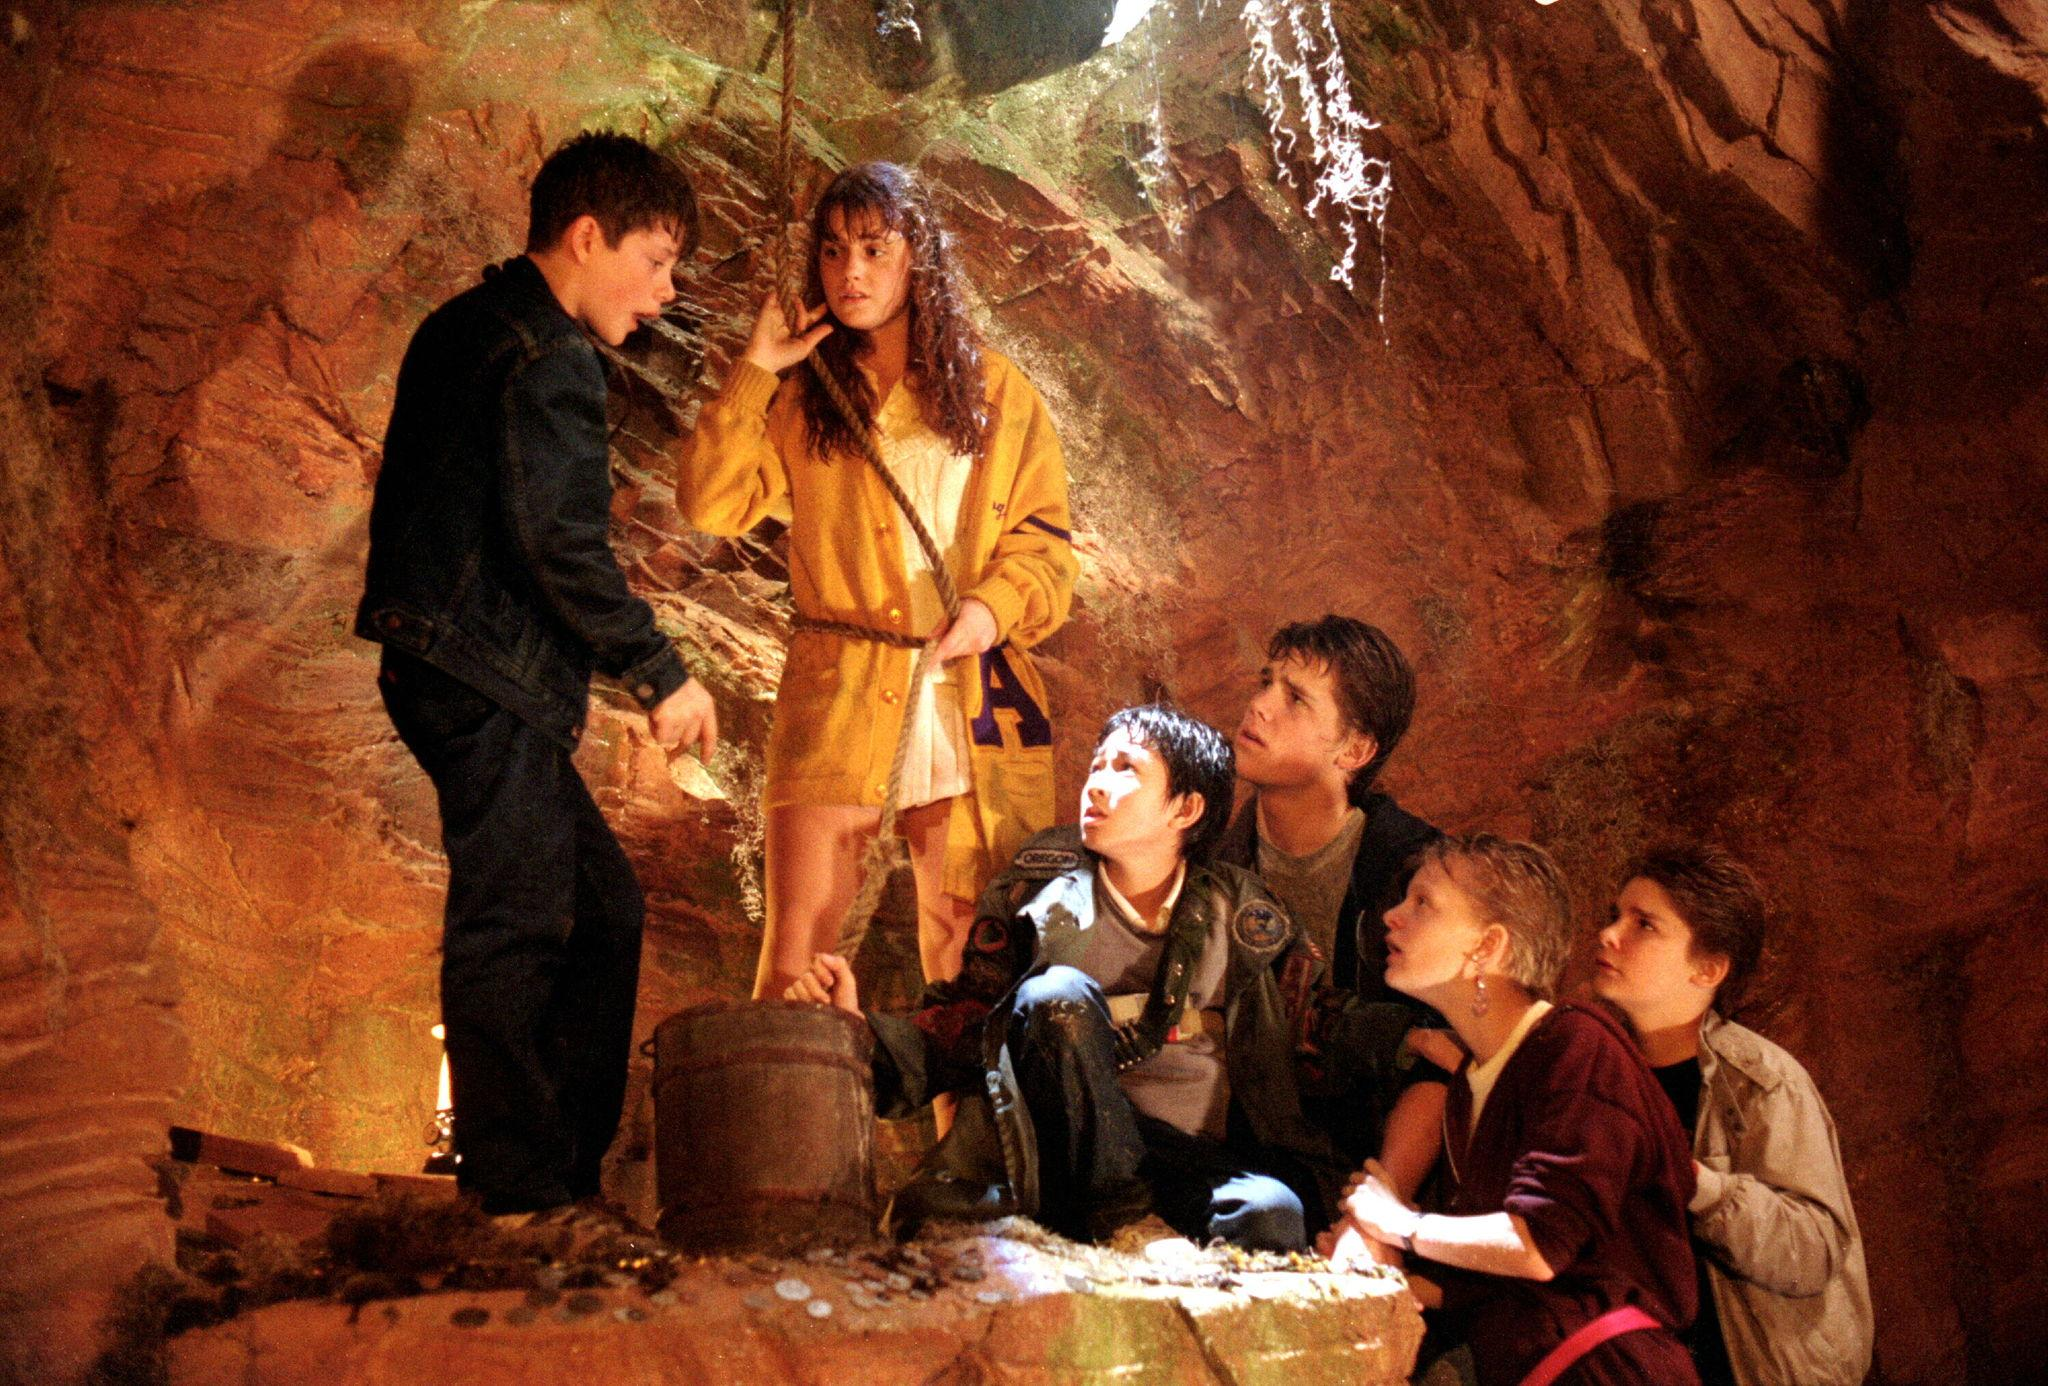 the goonies essay The goonies are a close-knit group, but they are also an effective group of solving problems the goonies deal with problems differently depending on the situation each one of the members has individual attributes suited for different situations.